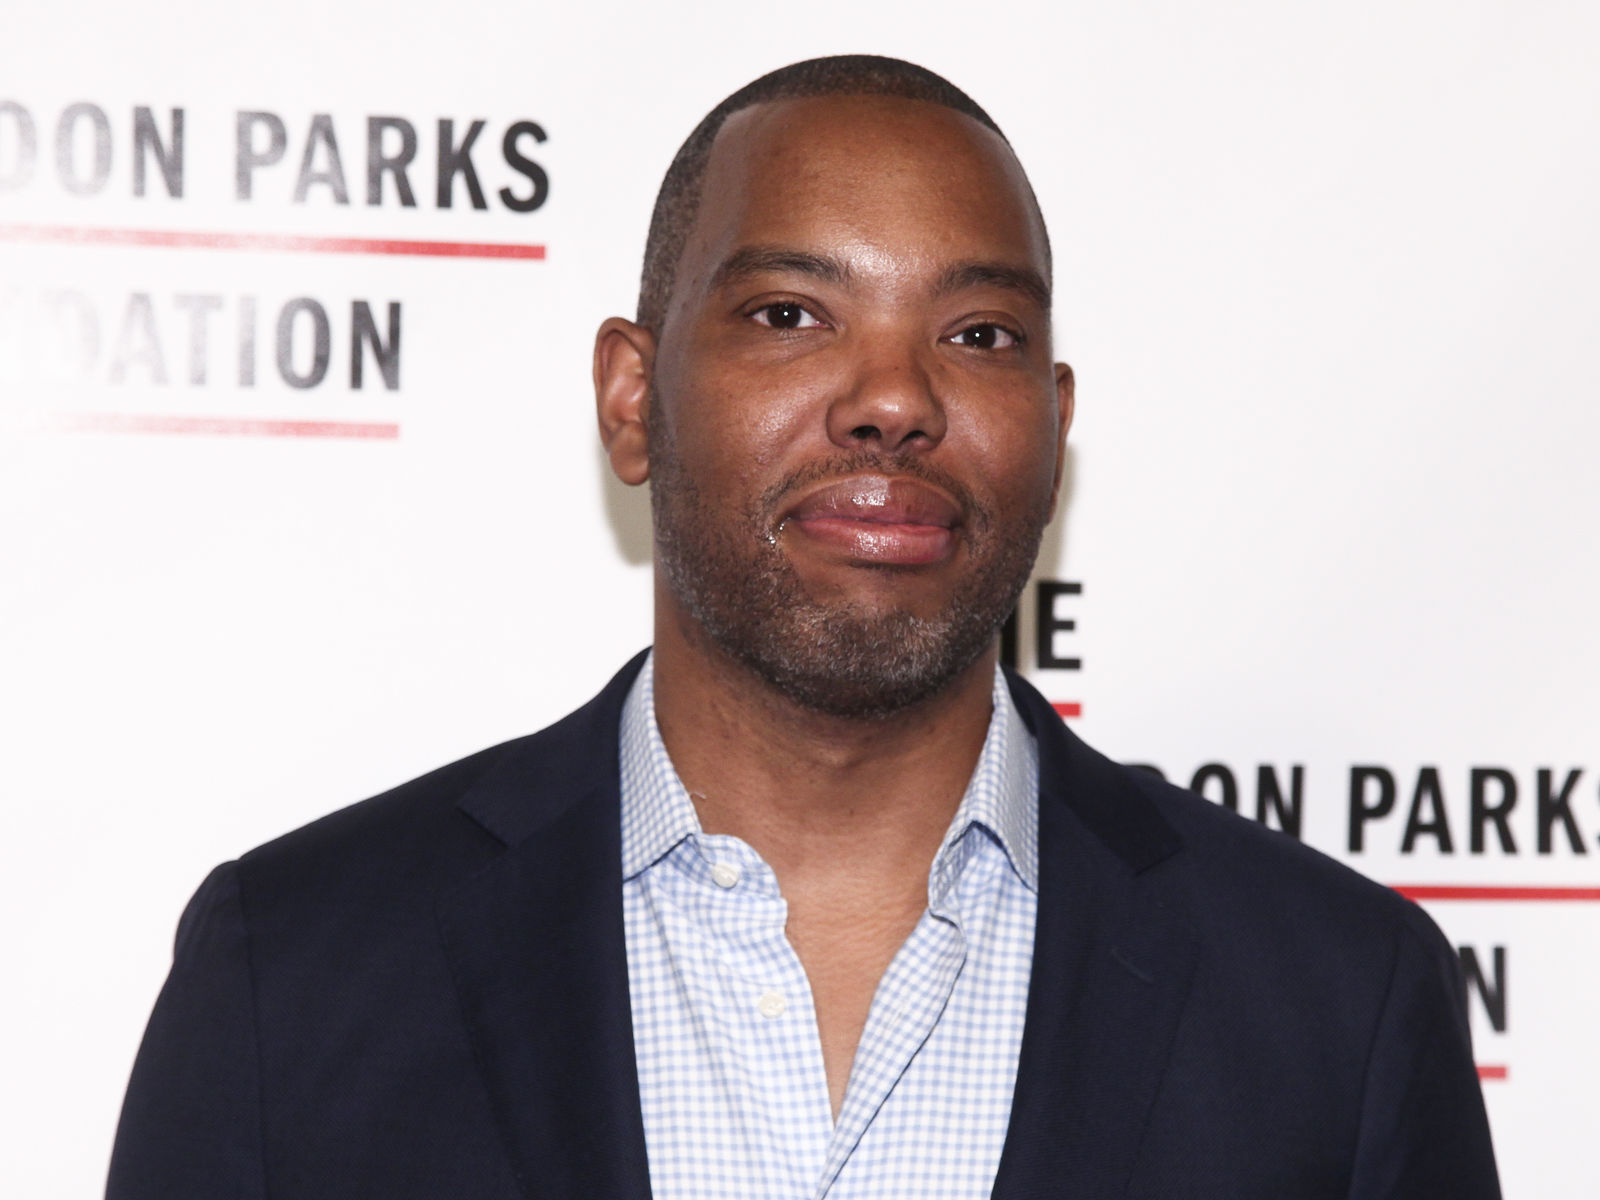 Ta-Nehisi Coates attends the The Gordon Parks Foundation Annual Awards Gala at Cipriani 42nd Street on Tuesday, May 22, 2018, in New York. (Photo by Andy Kropa/Invision/AP)